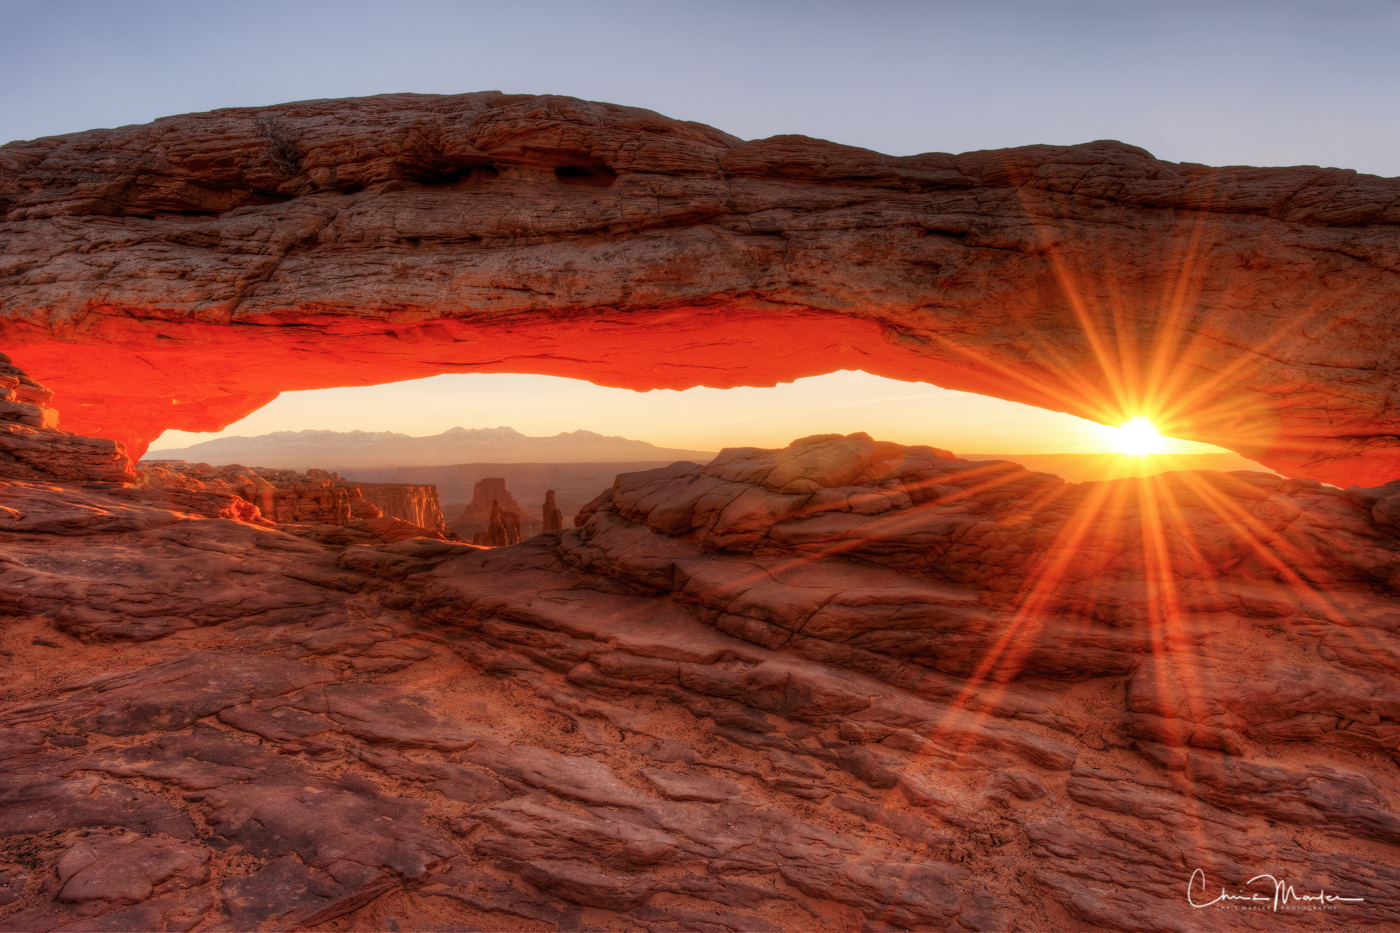 A classic shot of Mesa Arch at sunrise.  This once relatively obscure location is now world famous, and photographers flock here...